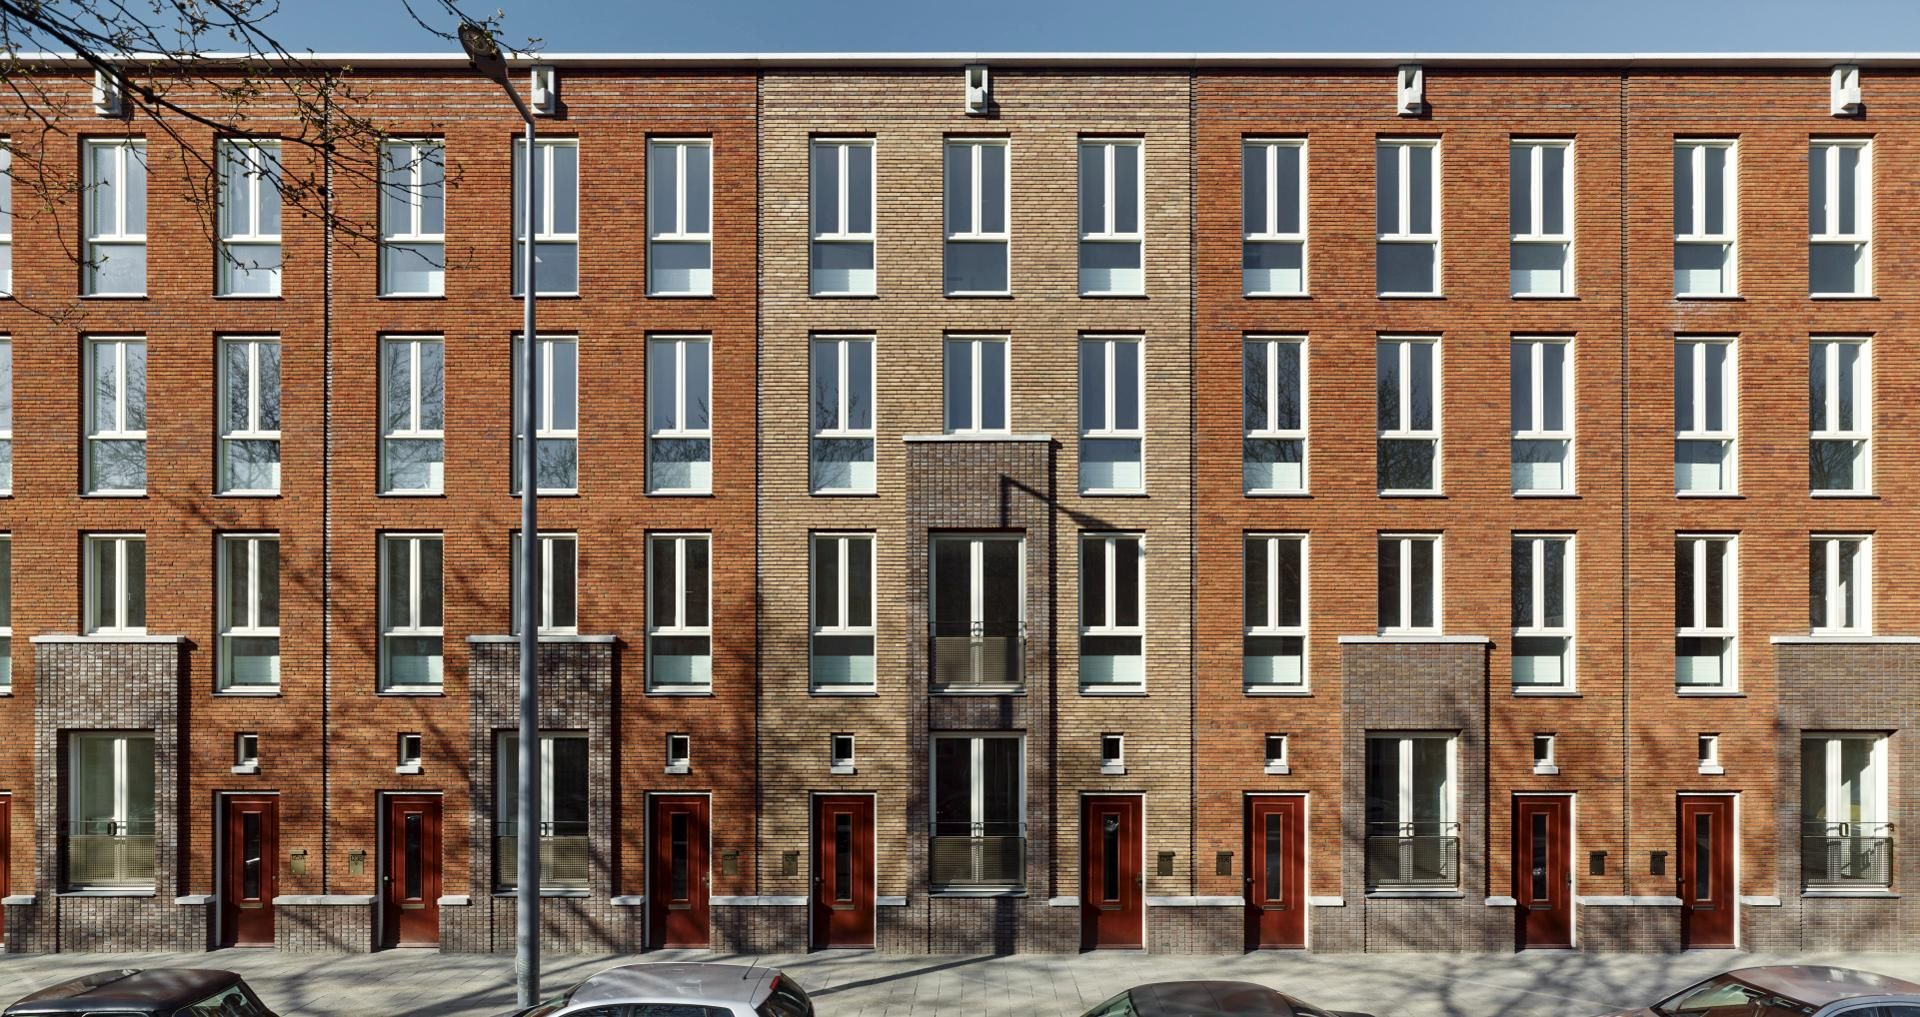 brick facade apartment buildings front view houses with 2 doors